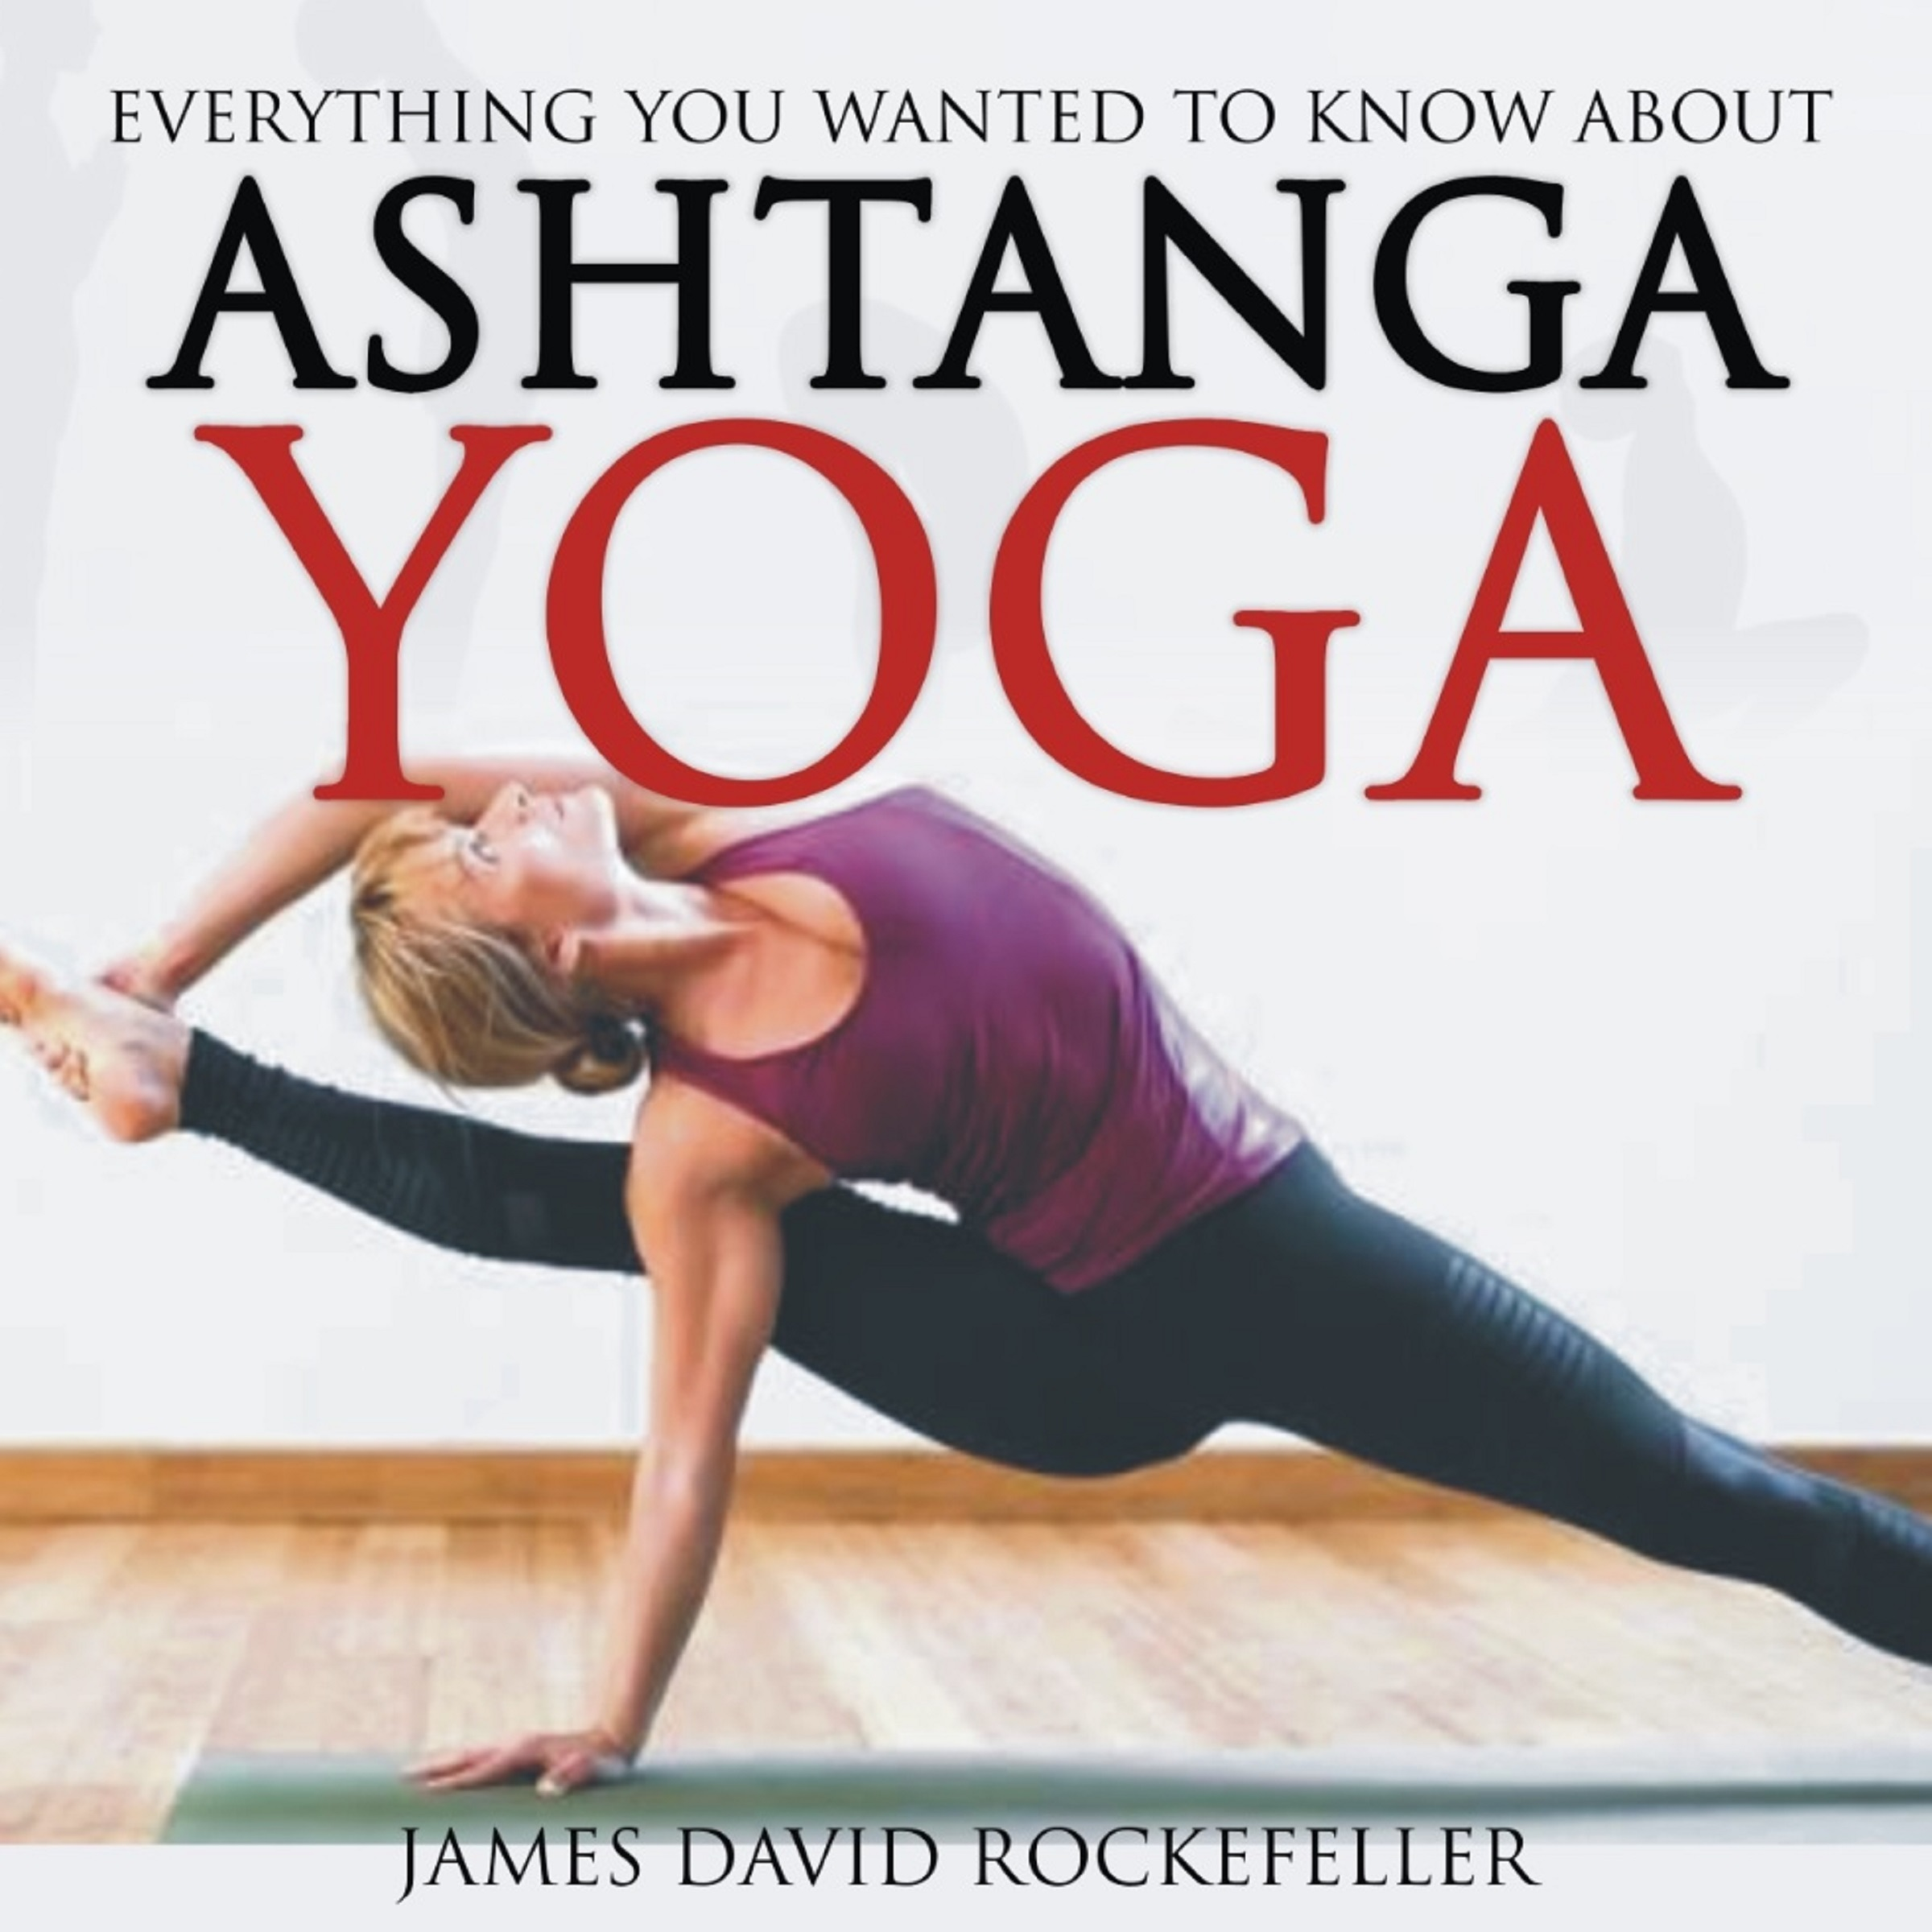 Everything you wanted to know about yoga